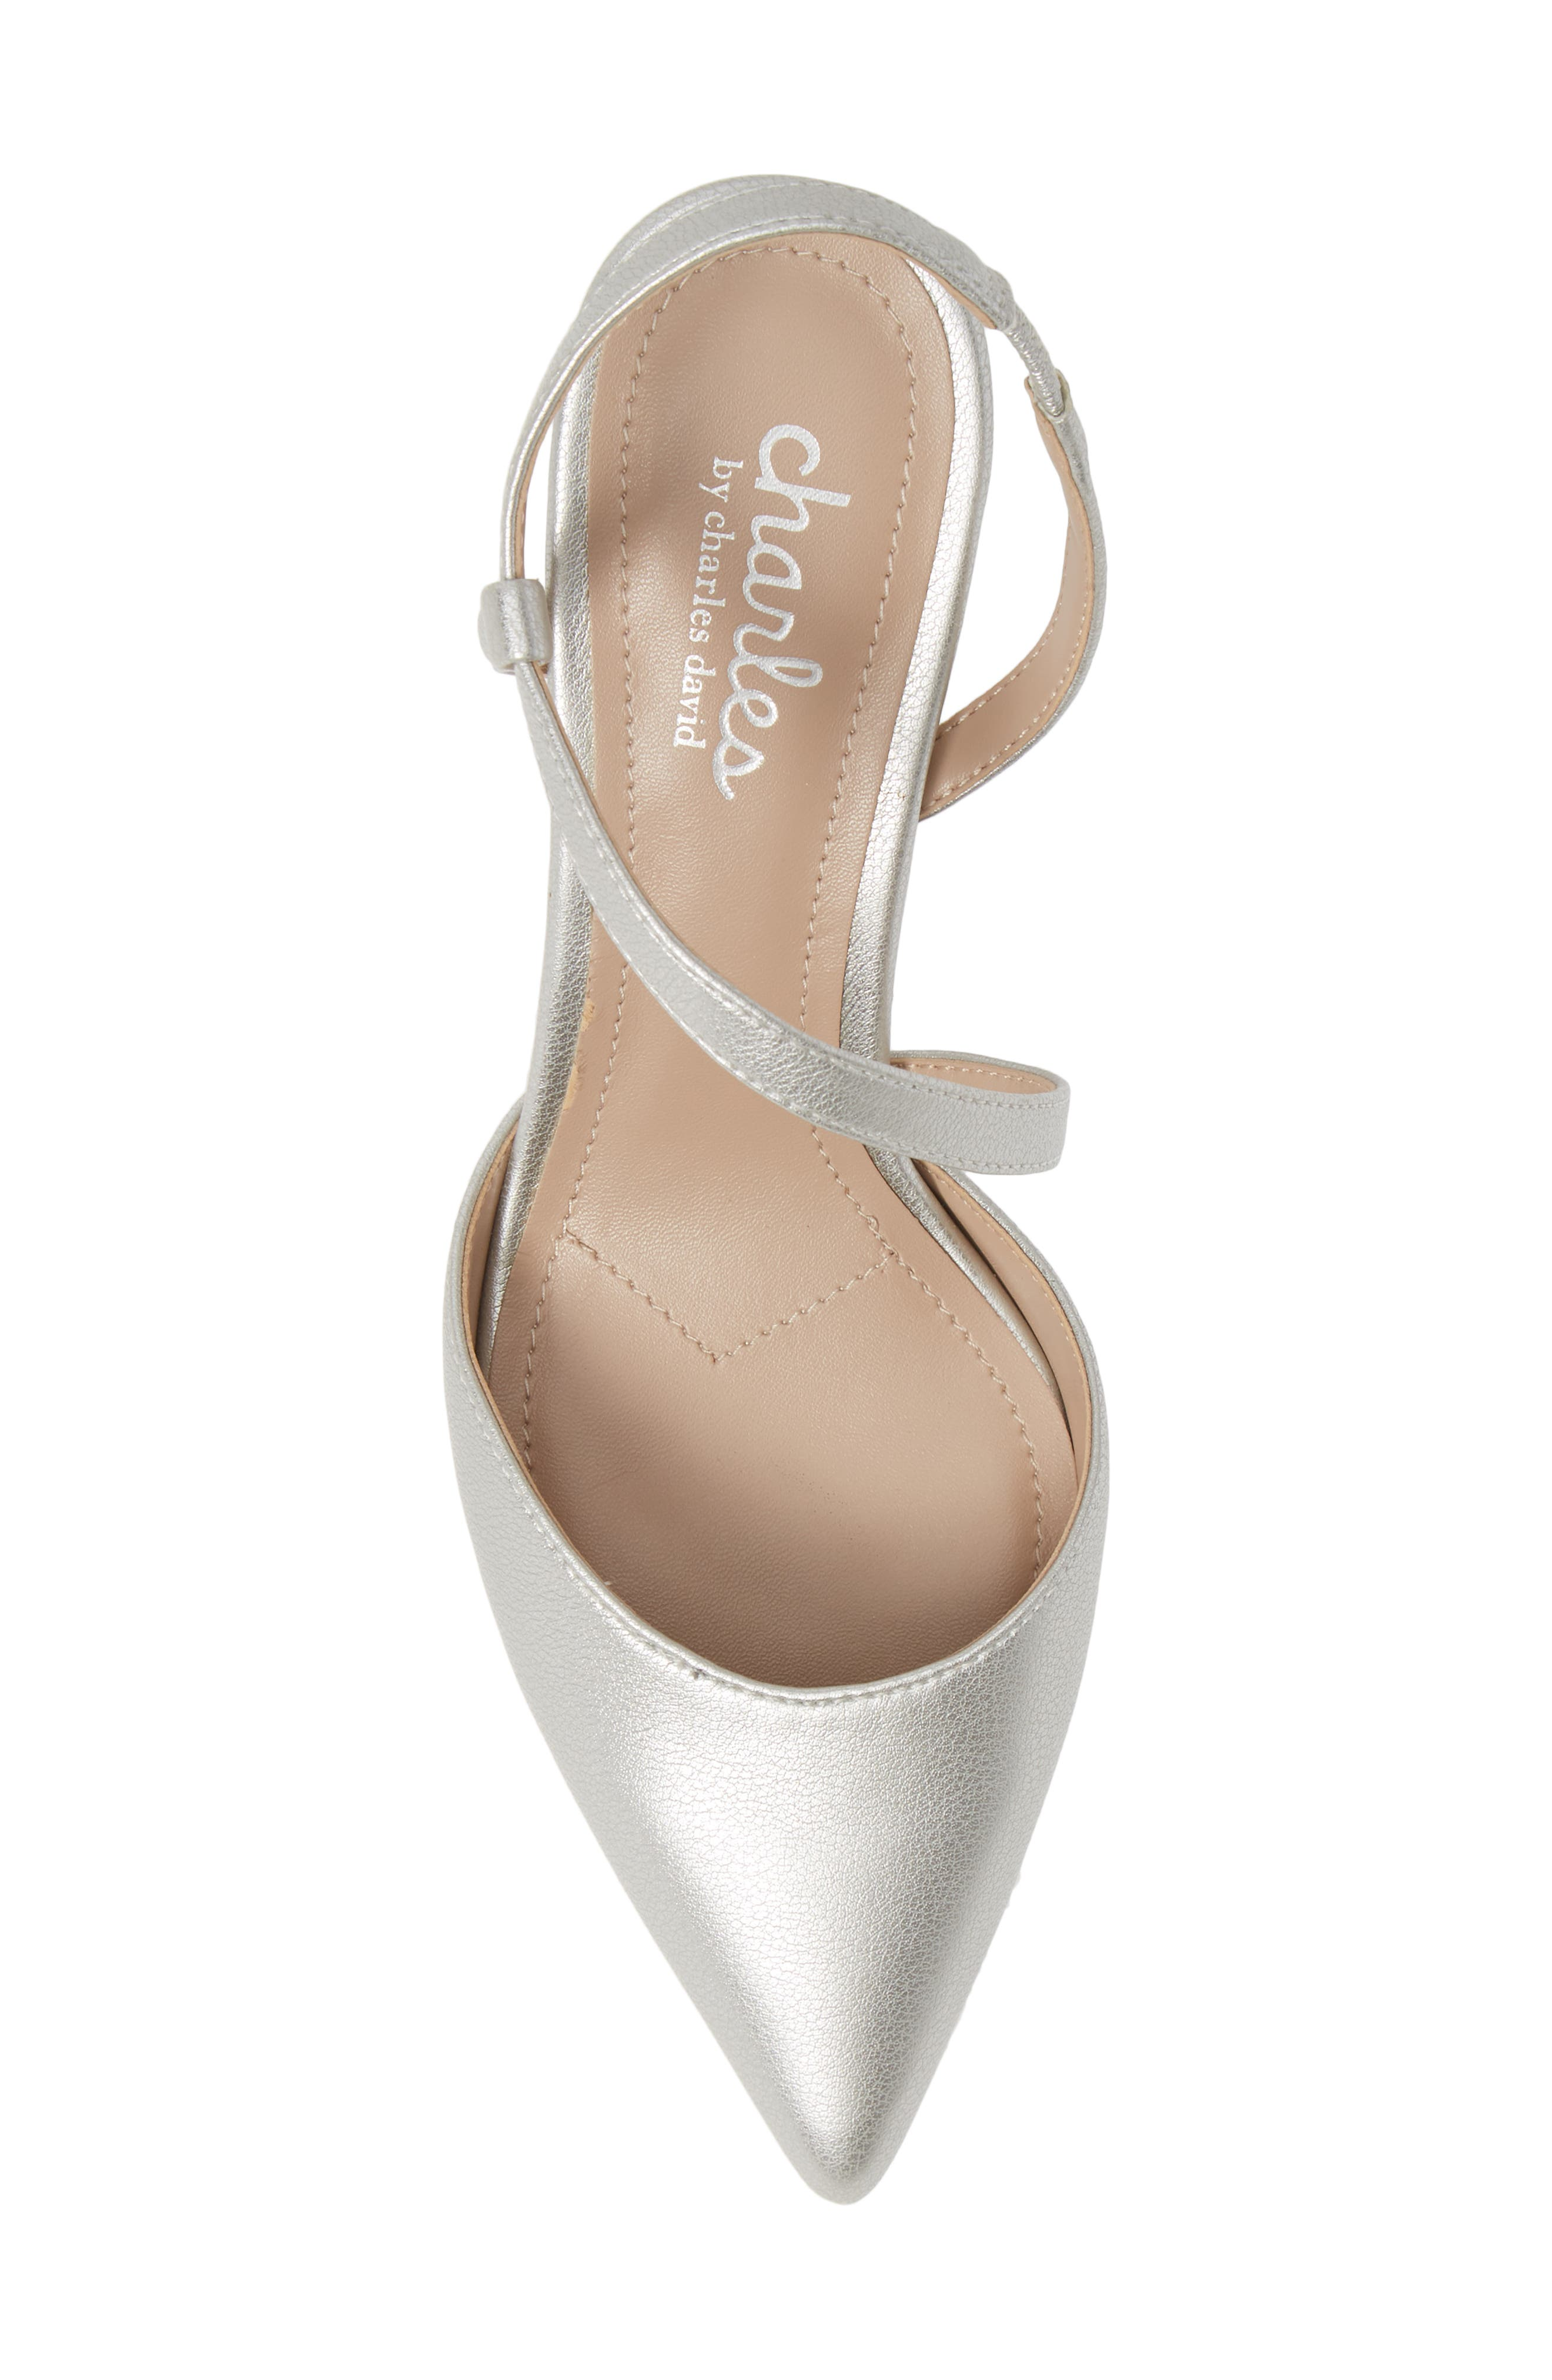 CHARLES BY CHARLES DAVID, Alda Pump, Alternate thumbnail 5, color, SILVER FAUX LEATHER